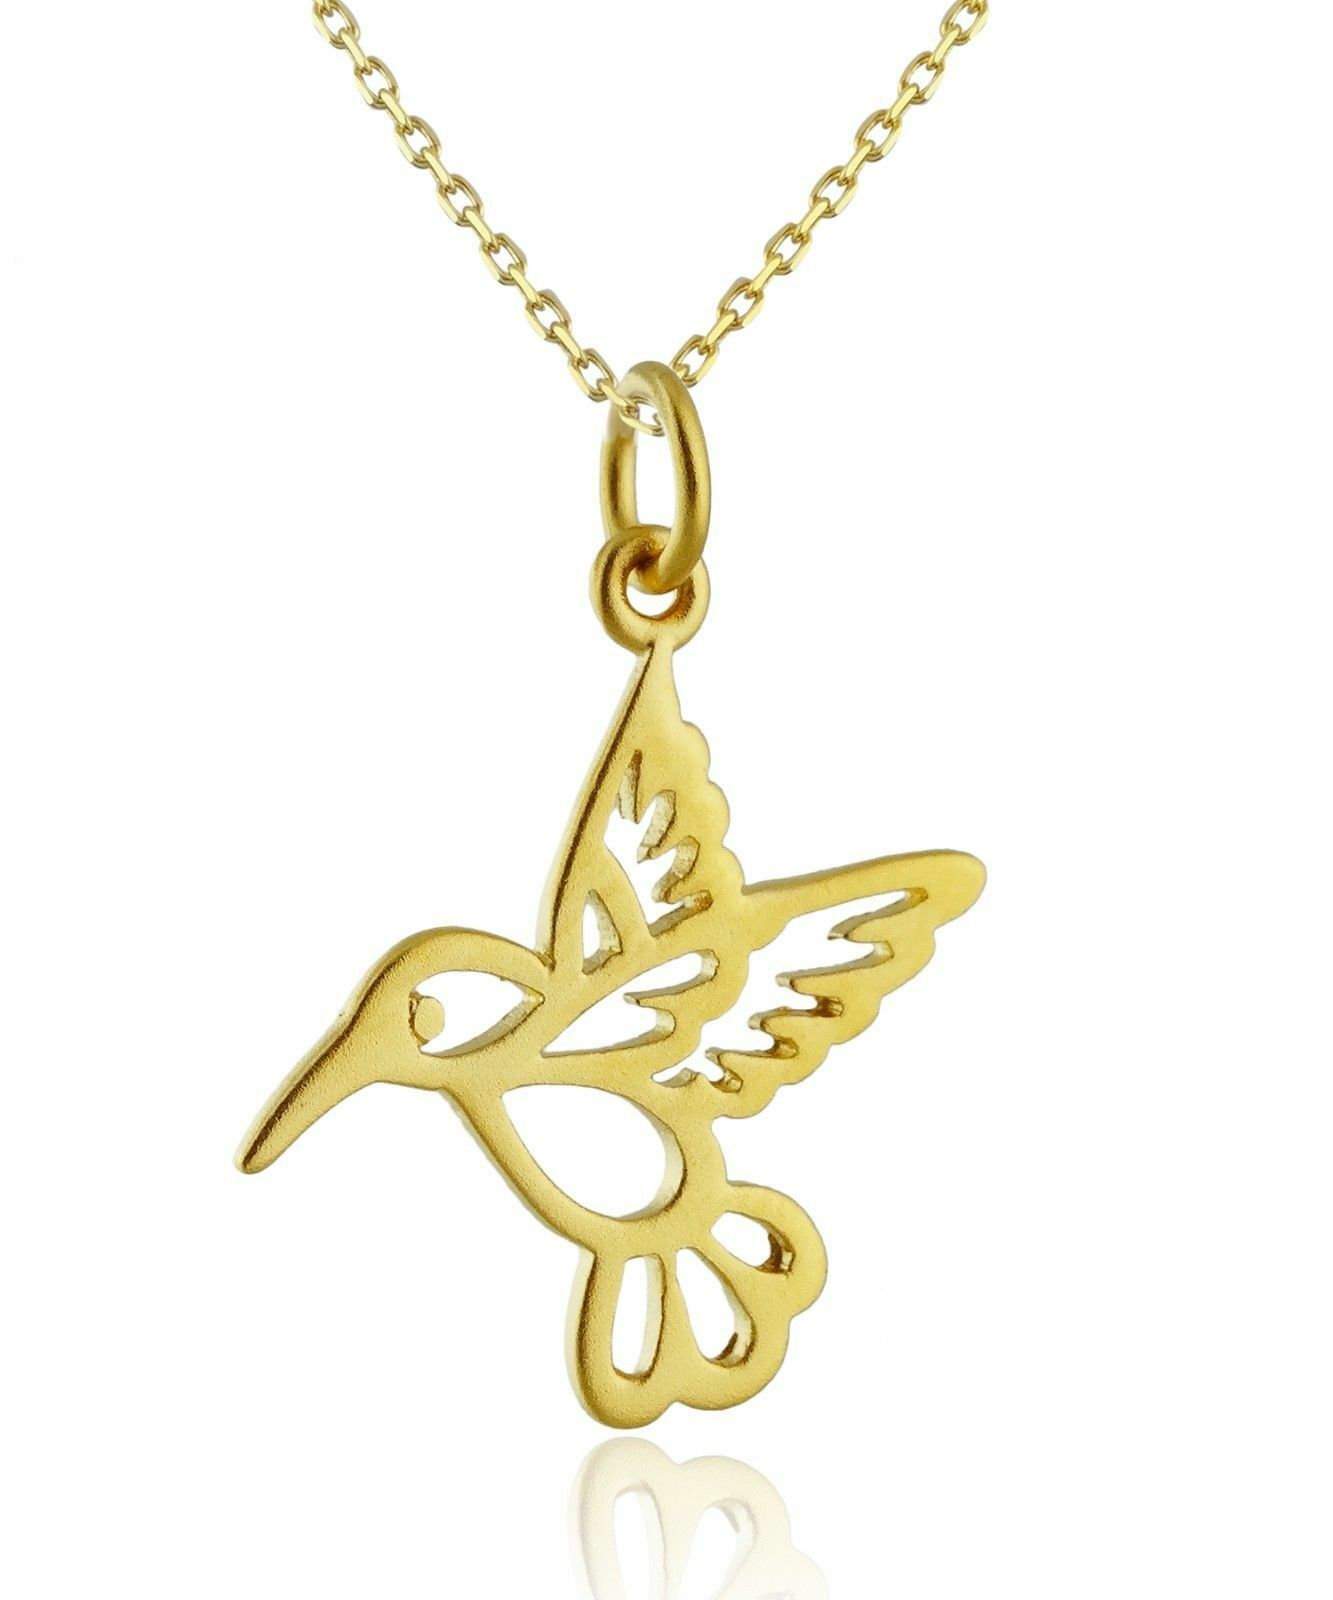 Charm Bird Pendant NEW 24K Gold Plated Sterling Silver Hummingbird Necklace